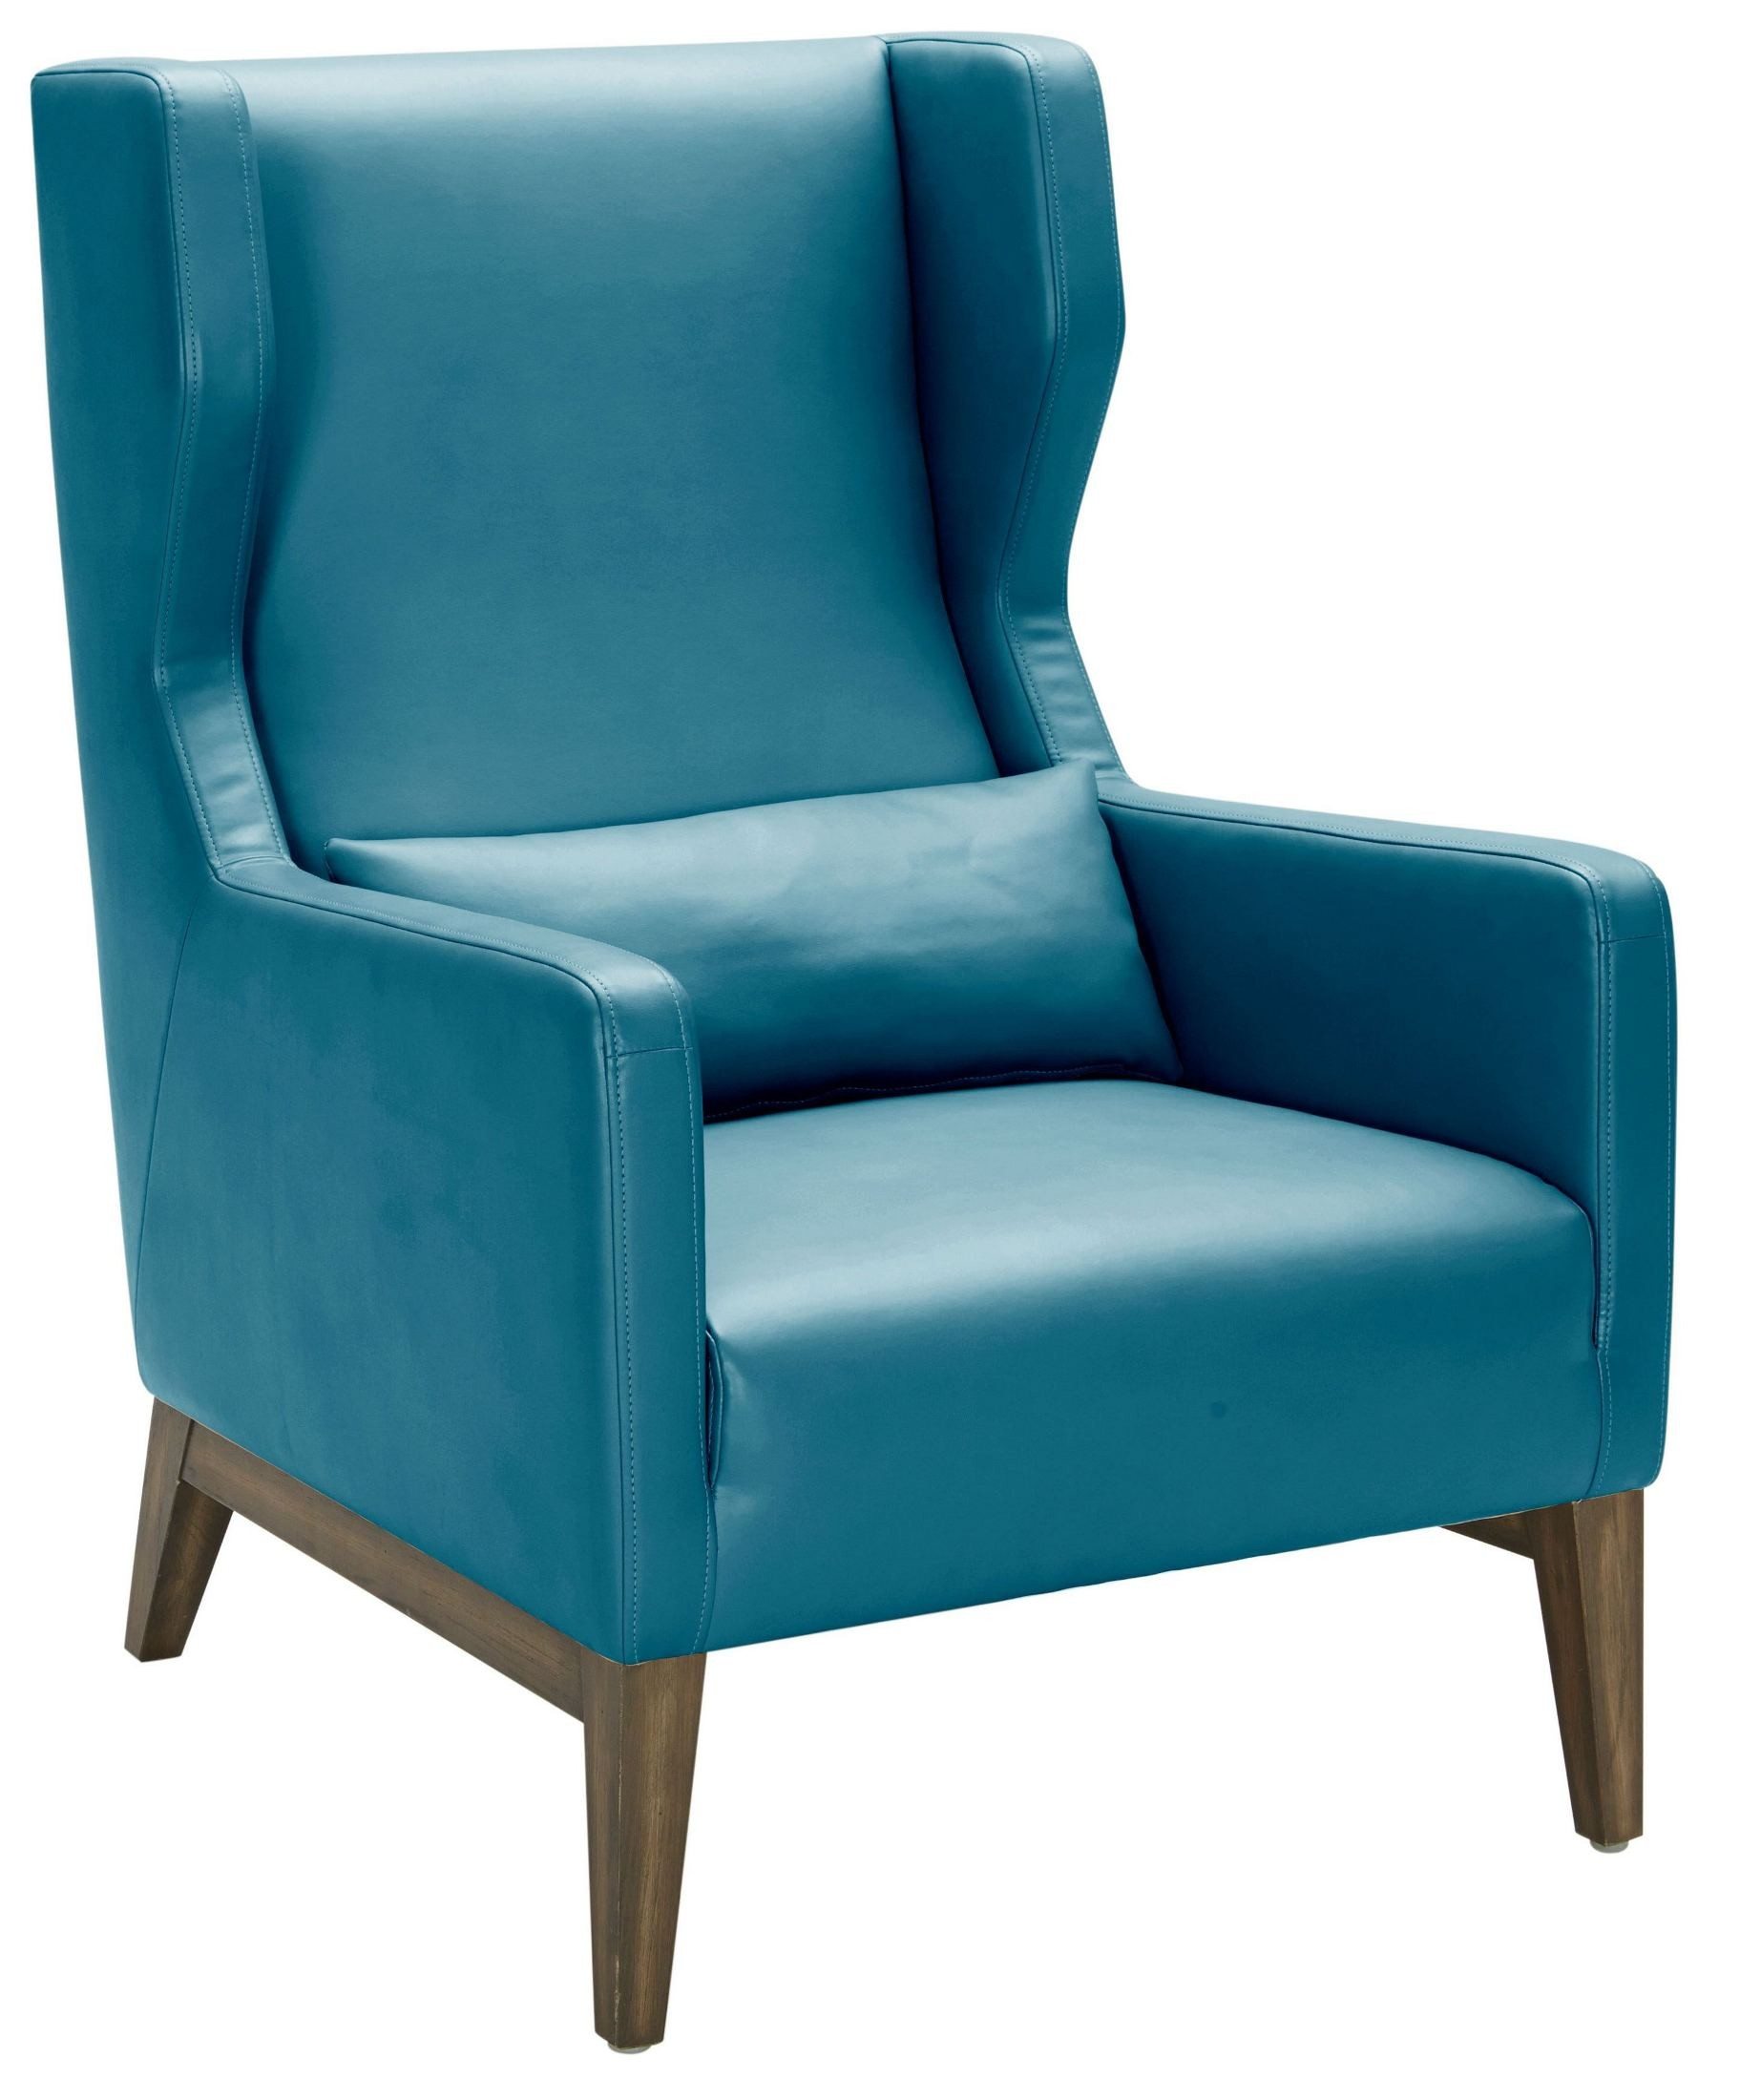 Turquoise Leather Chair Messina Turquoise Leather Armchair From Sunpan Coleman